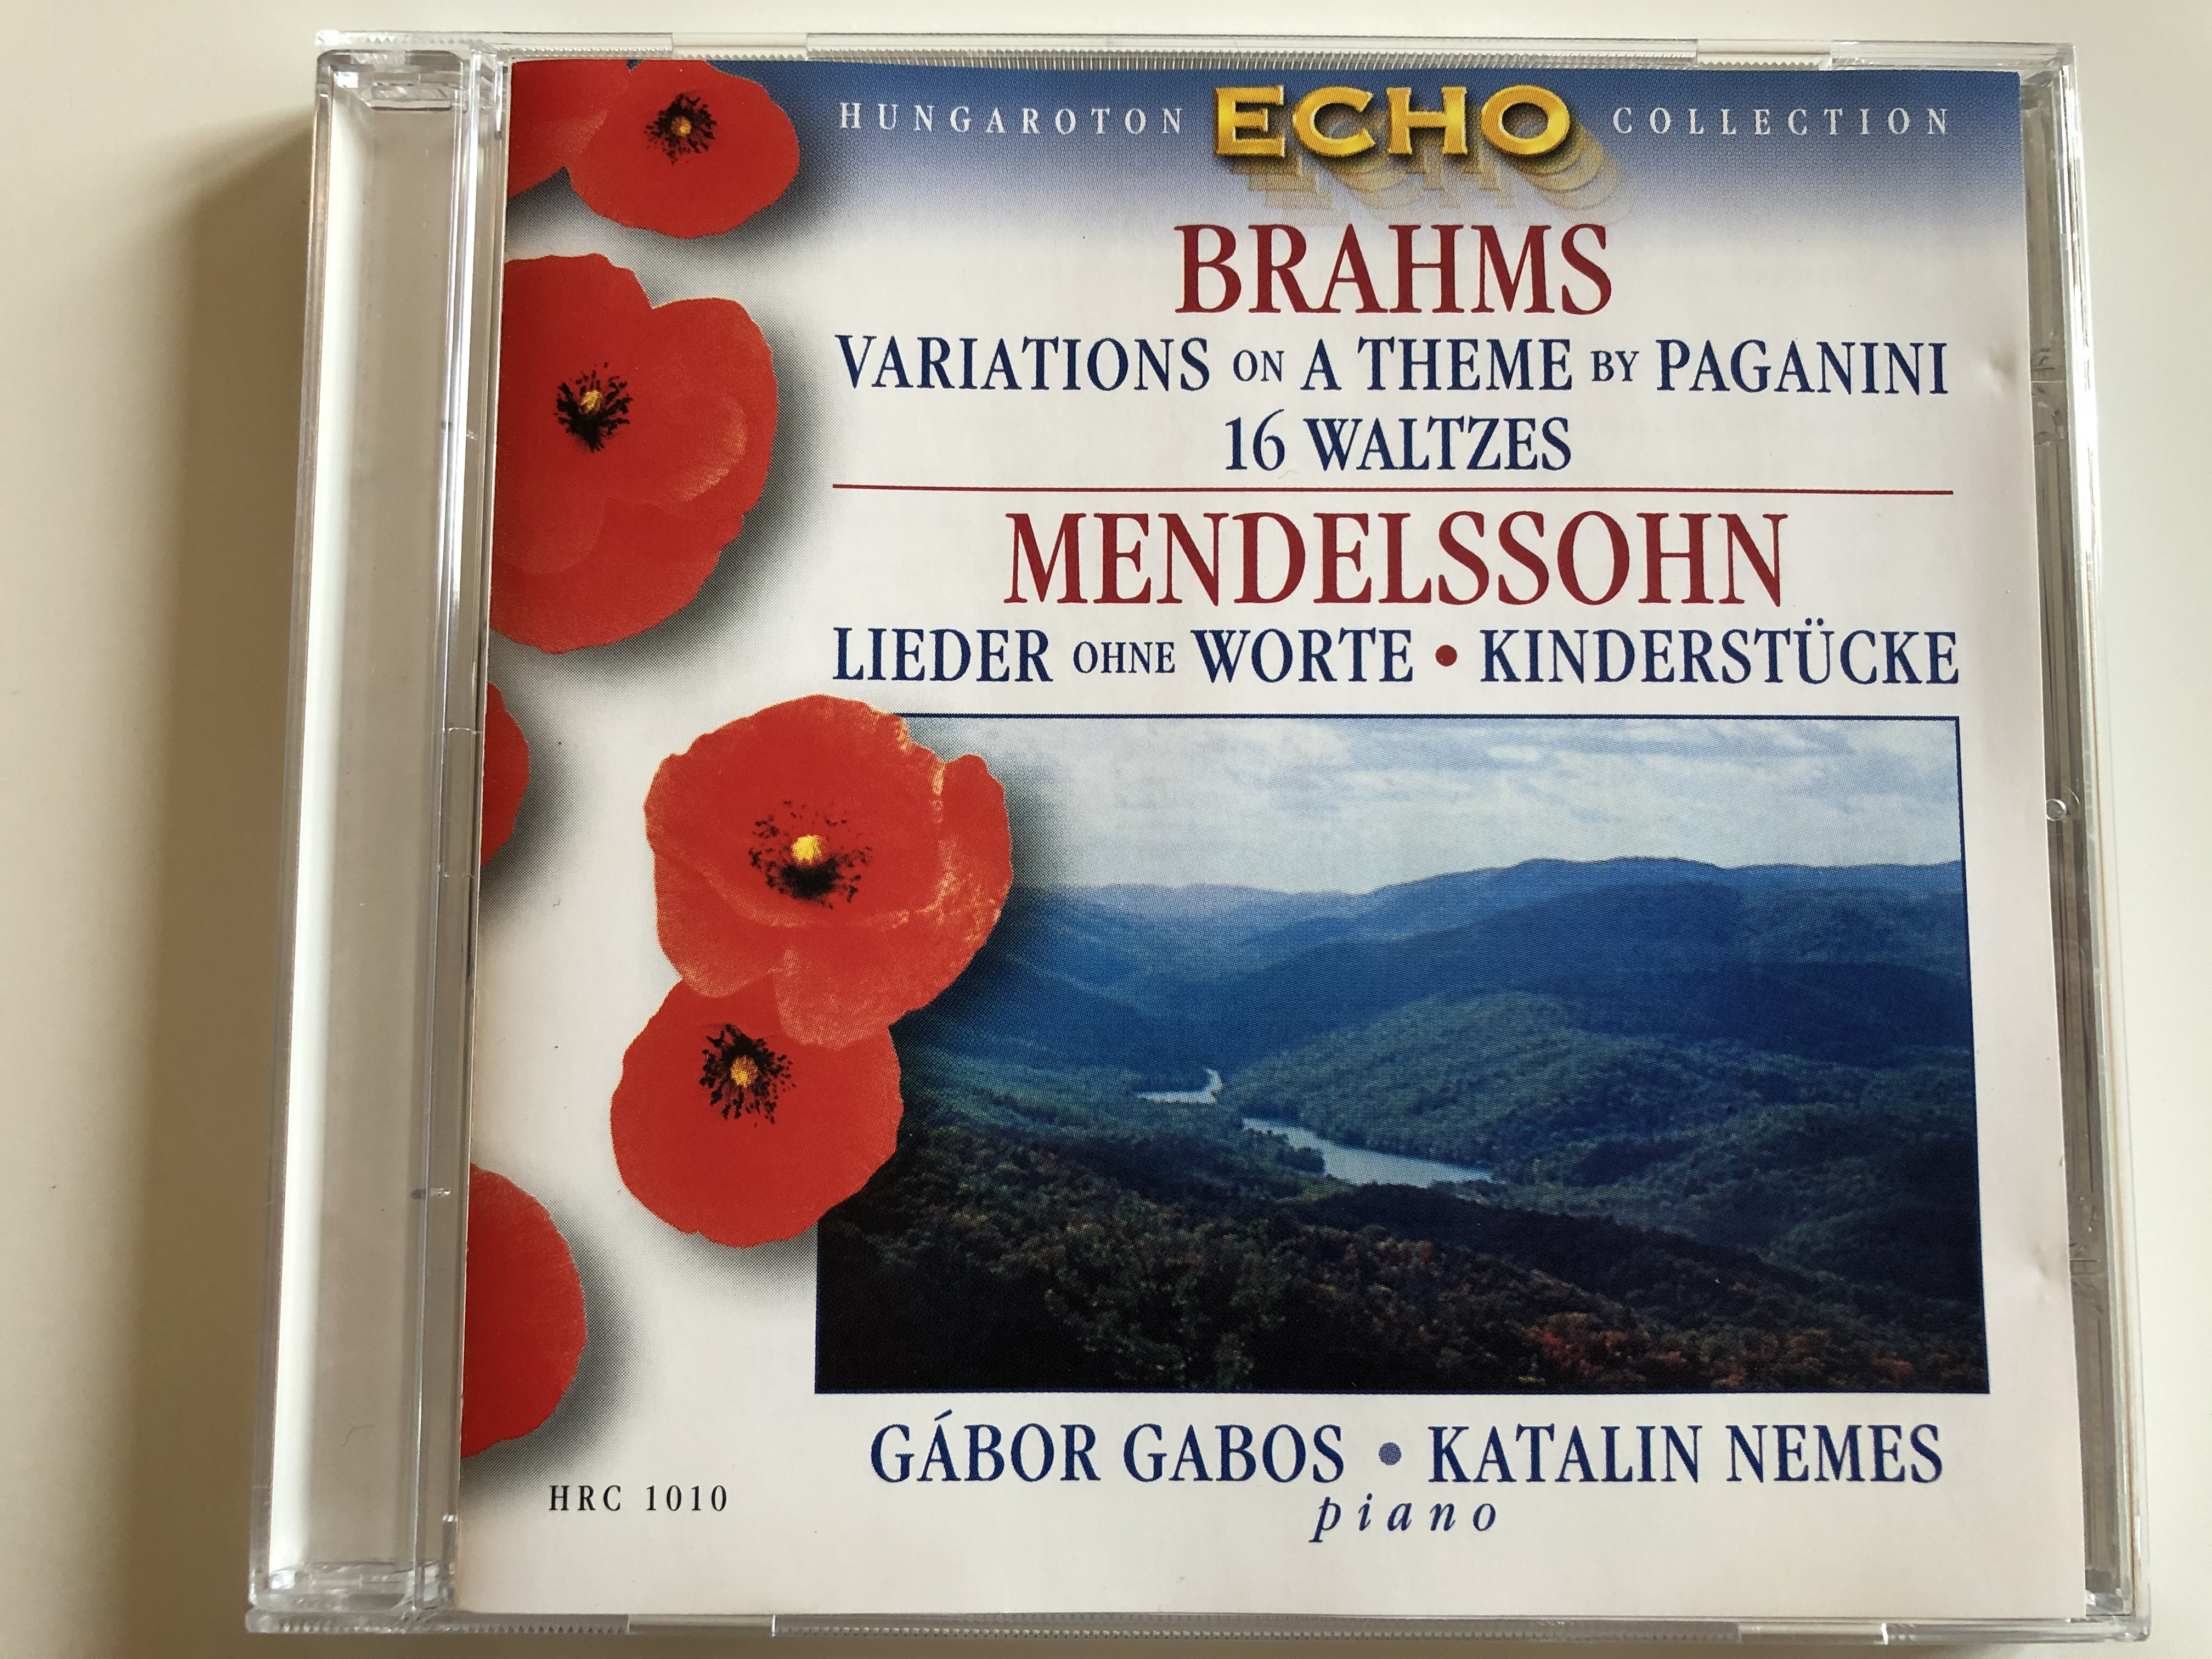 brahms-variations-on-a-theme-by-paganini-16-waltzes-mendelssohn-lieder-ohne-worte-kinderst-cke-g-bor-gabos-katalin-nemes-piano-hungaroton-audio-cd-1999-stereo-hrc-1010-1-.jpg